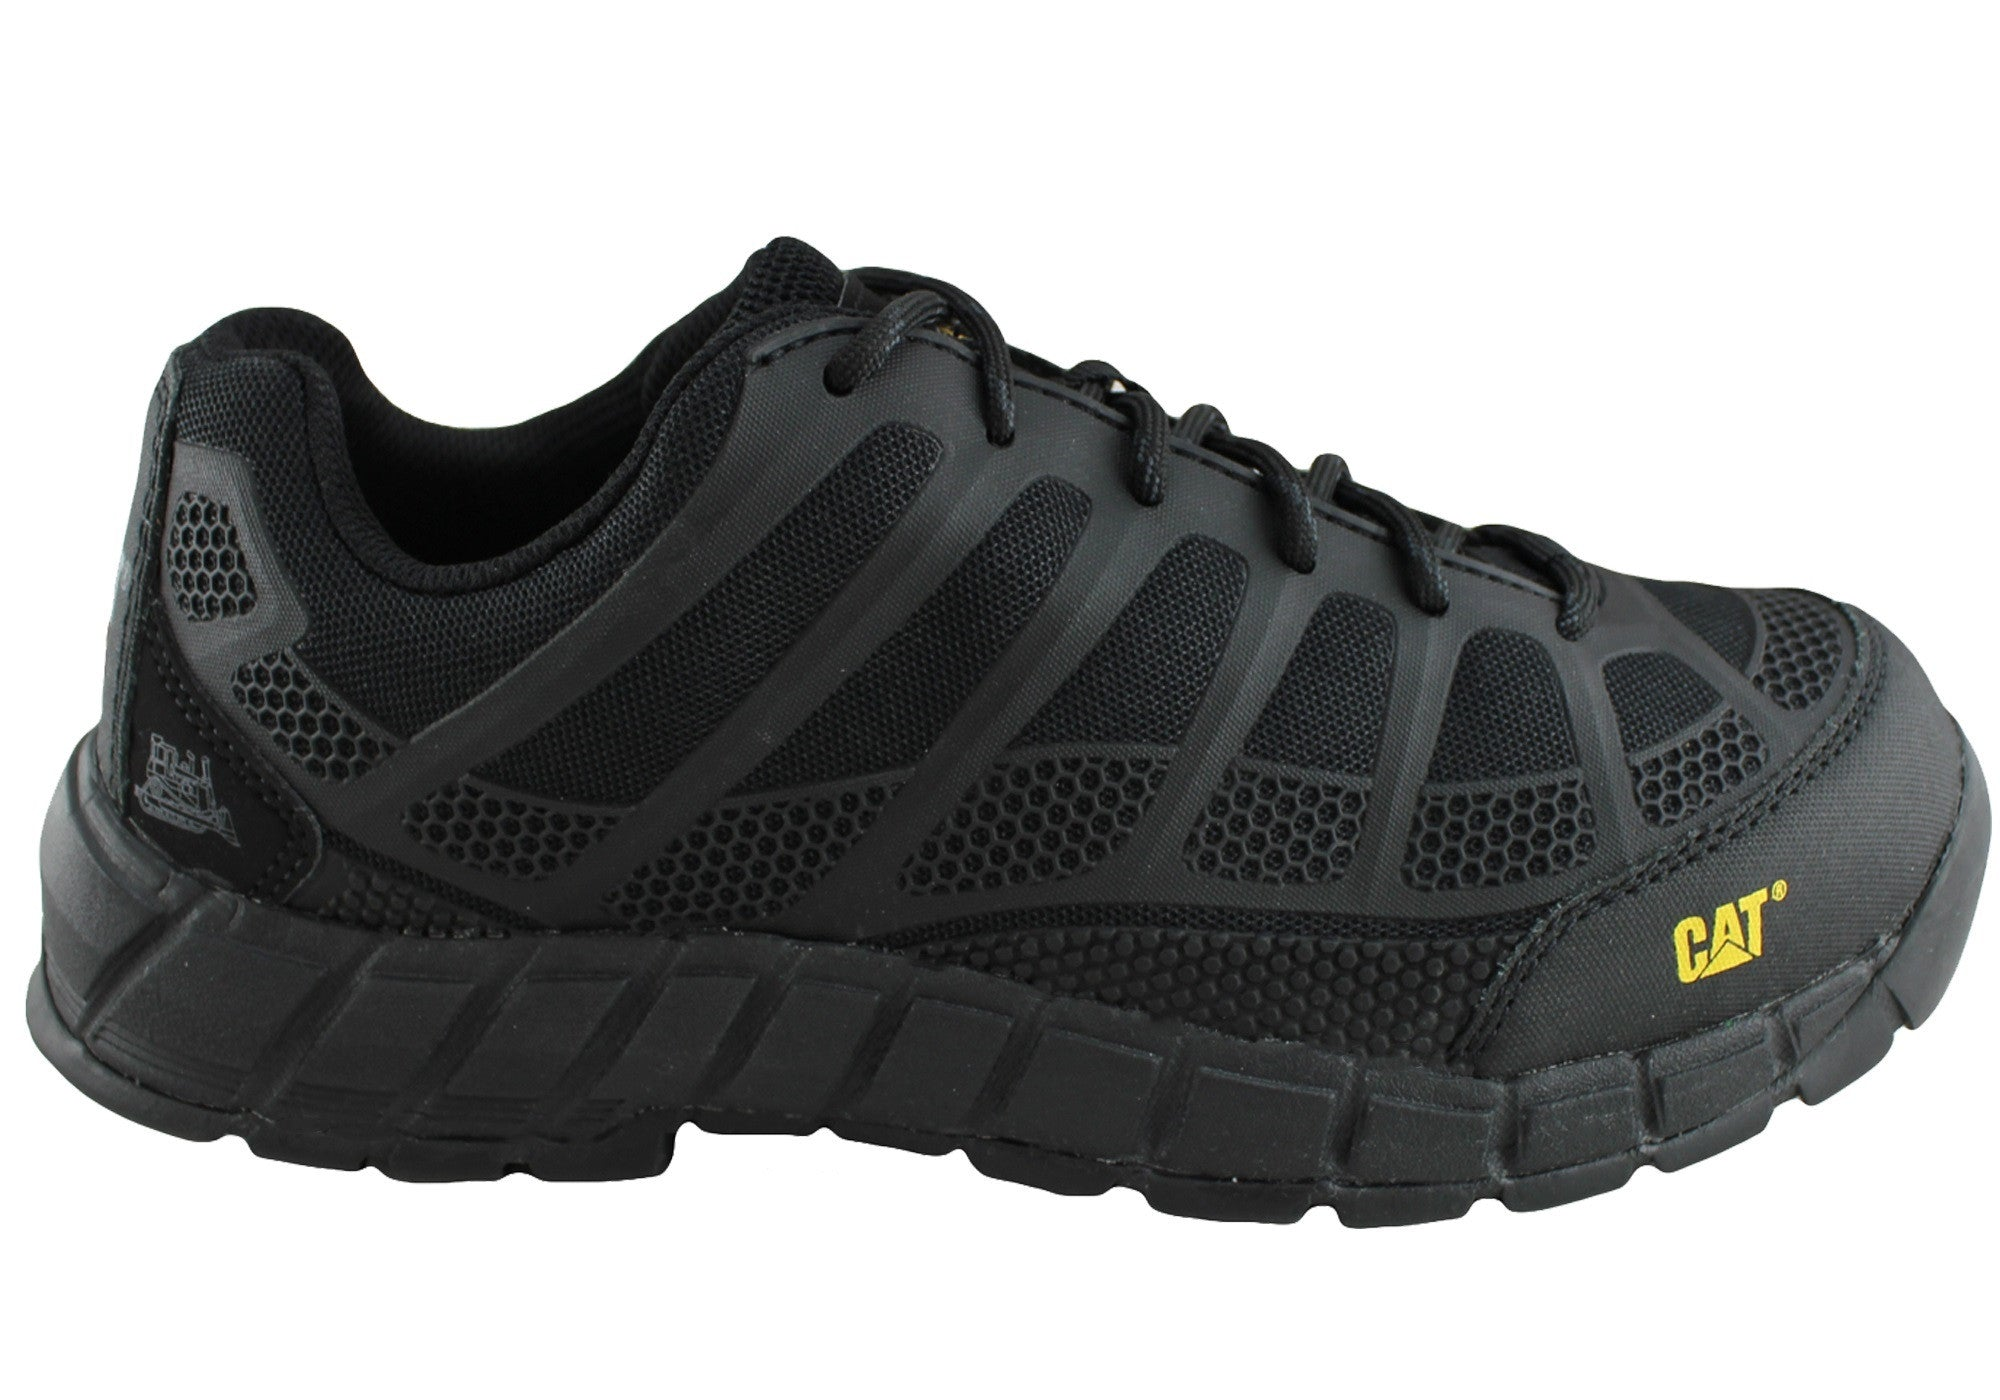 Caterpillar Streamline Composite Toe Mens Work Safety Shoes  f7b66e560071